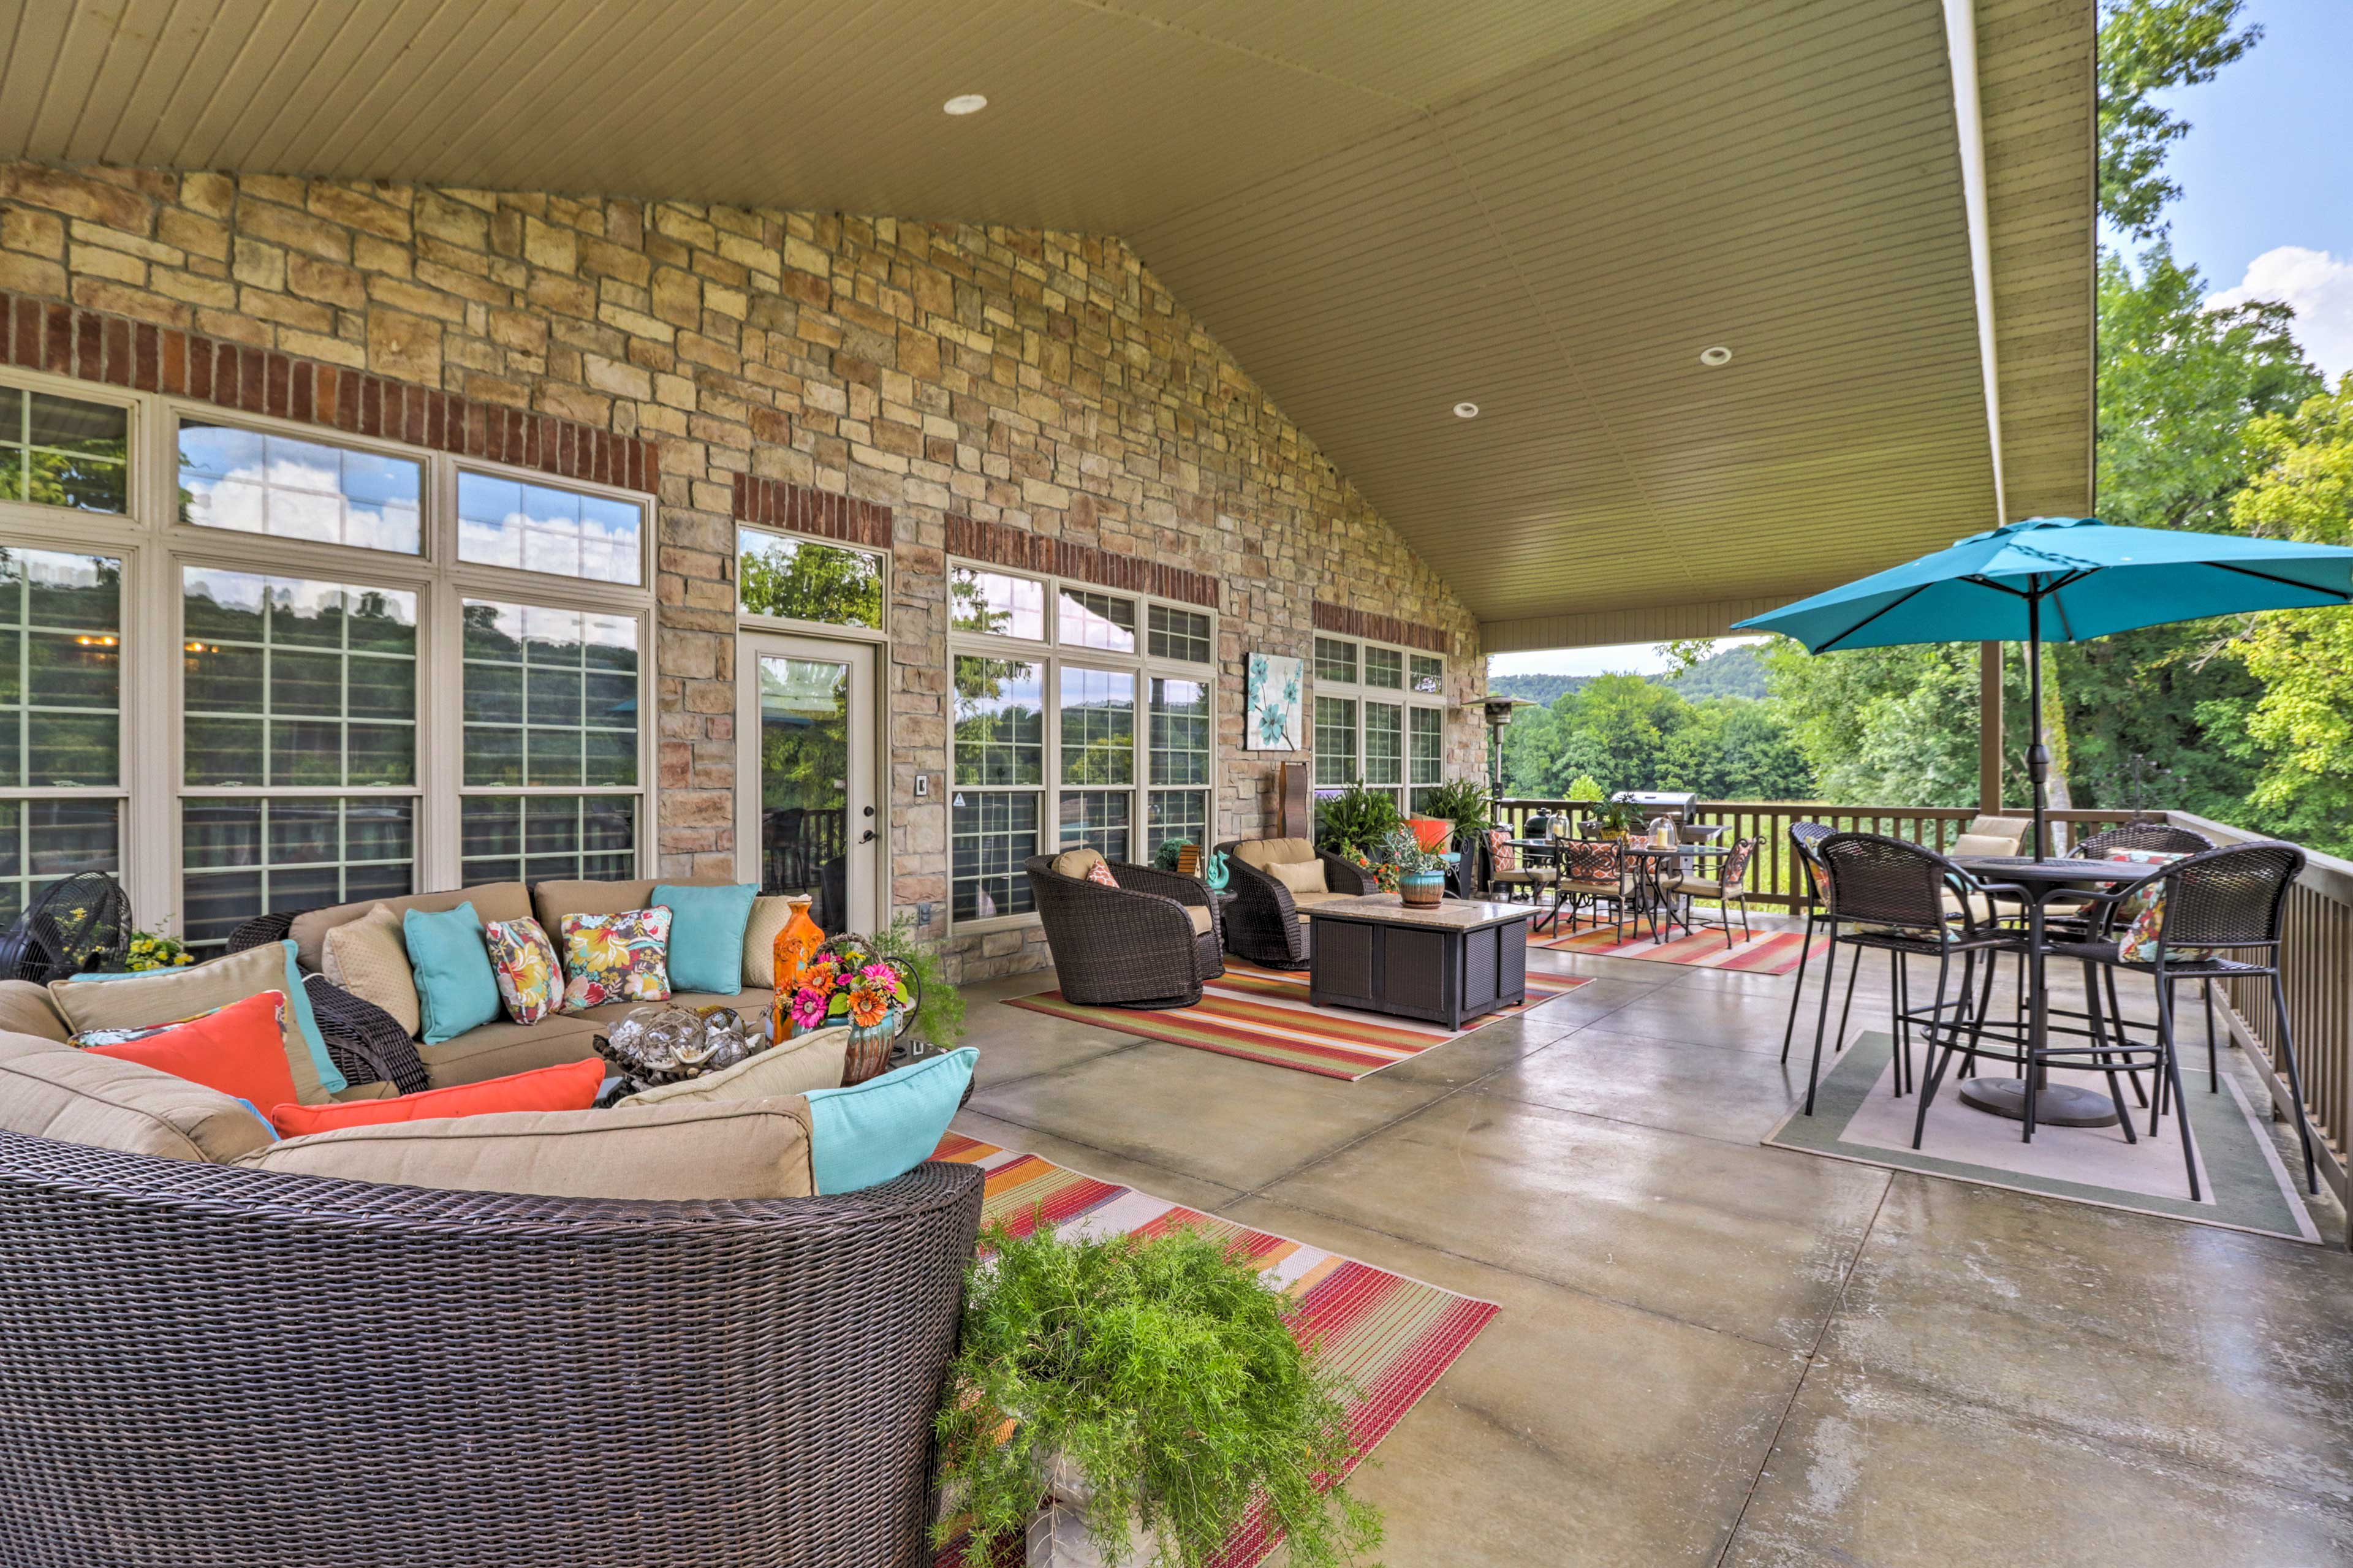 The expansive covered deck has a gas grill, gas heating lamp, and umbrella.